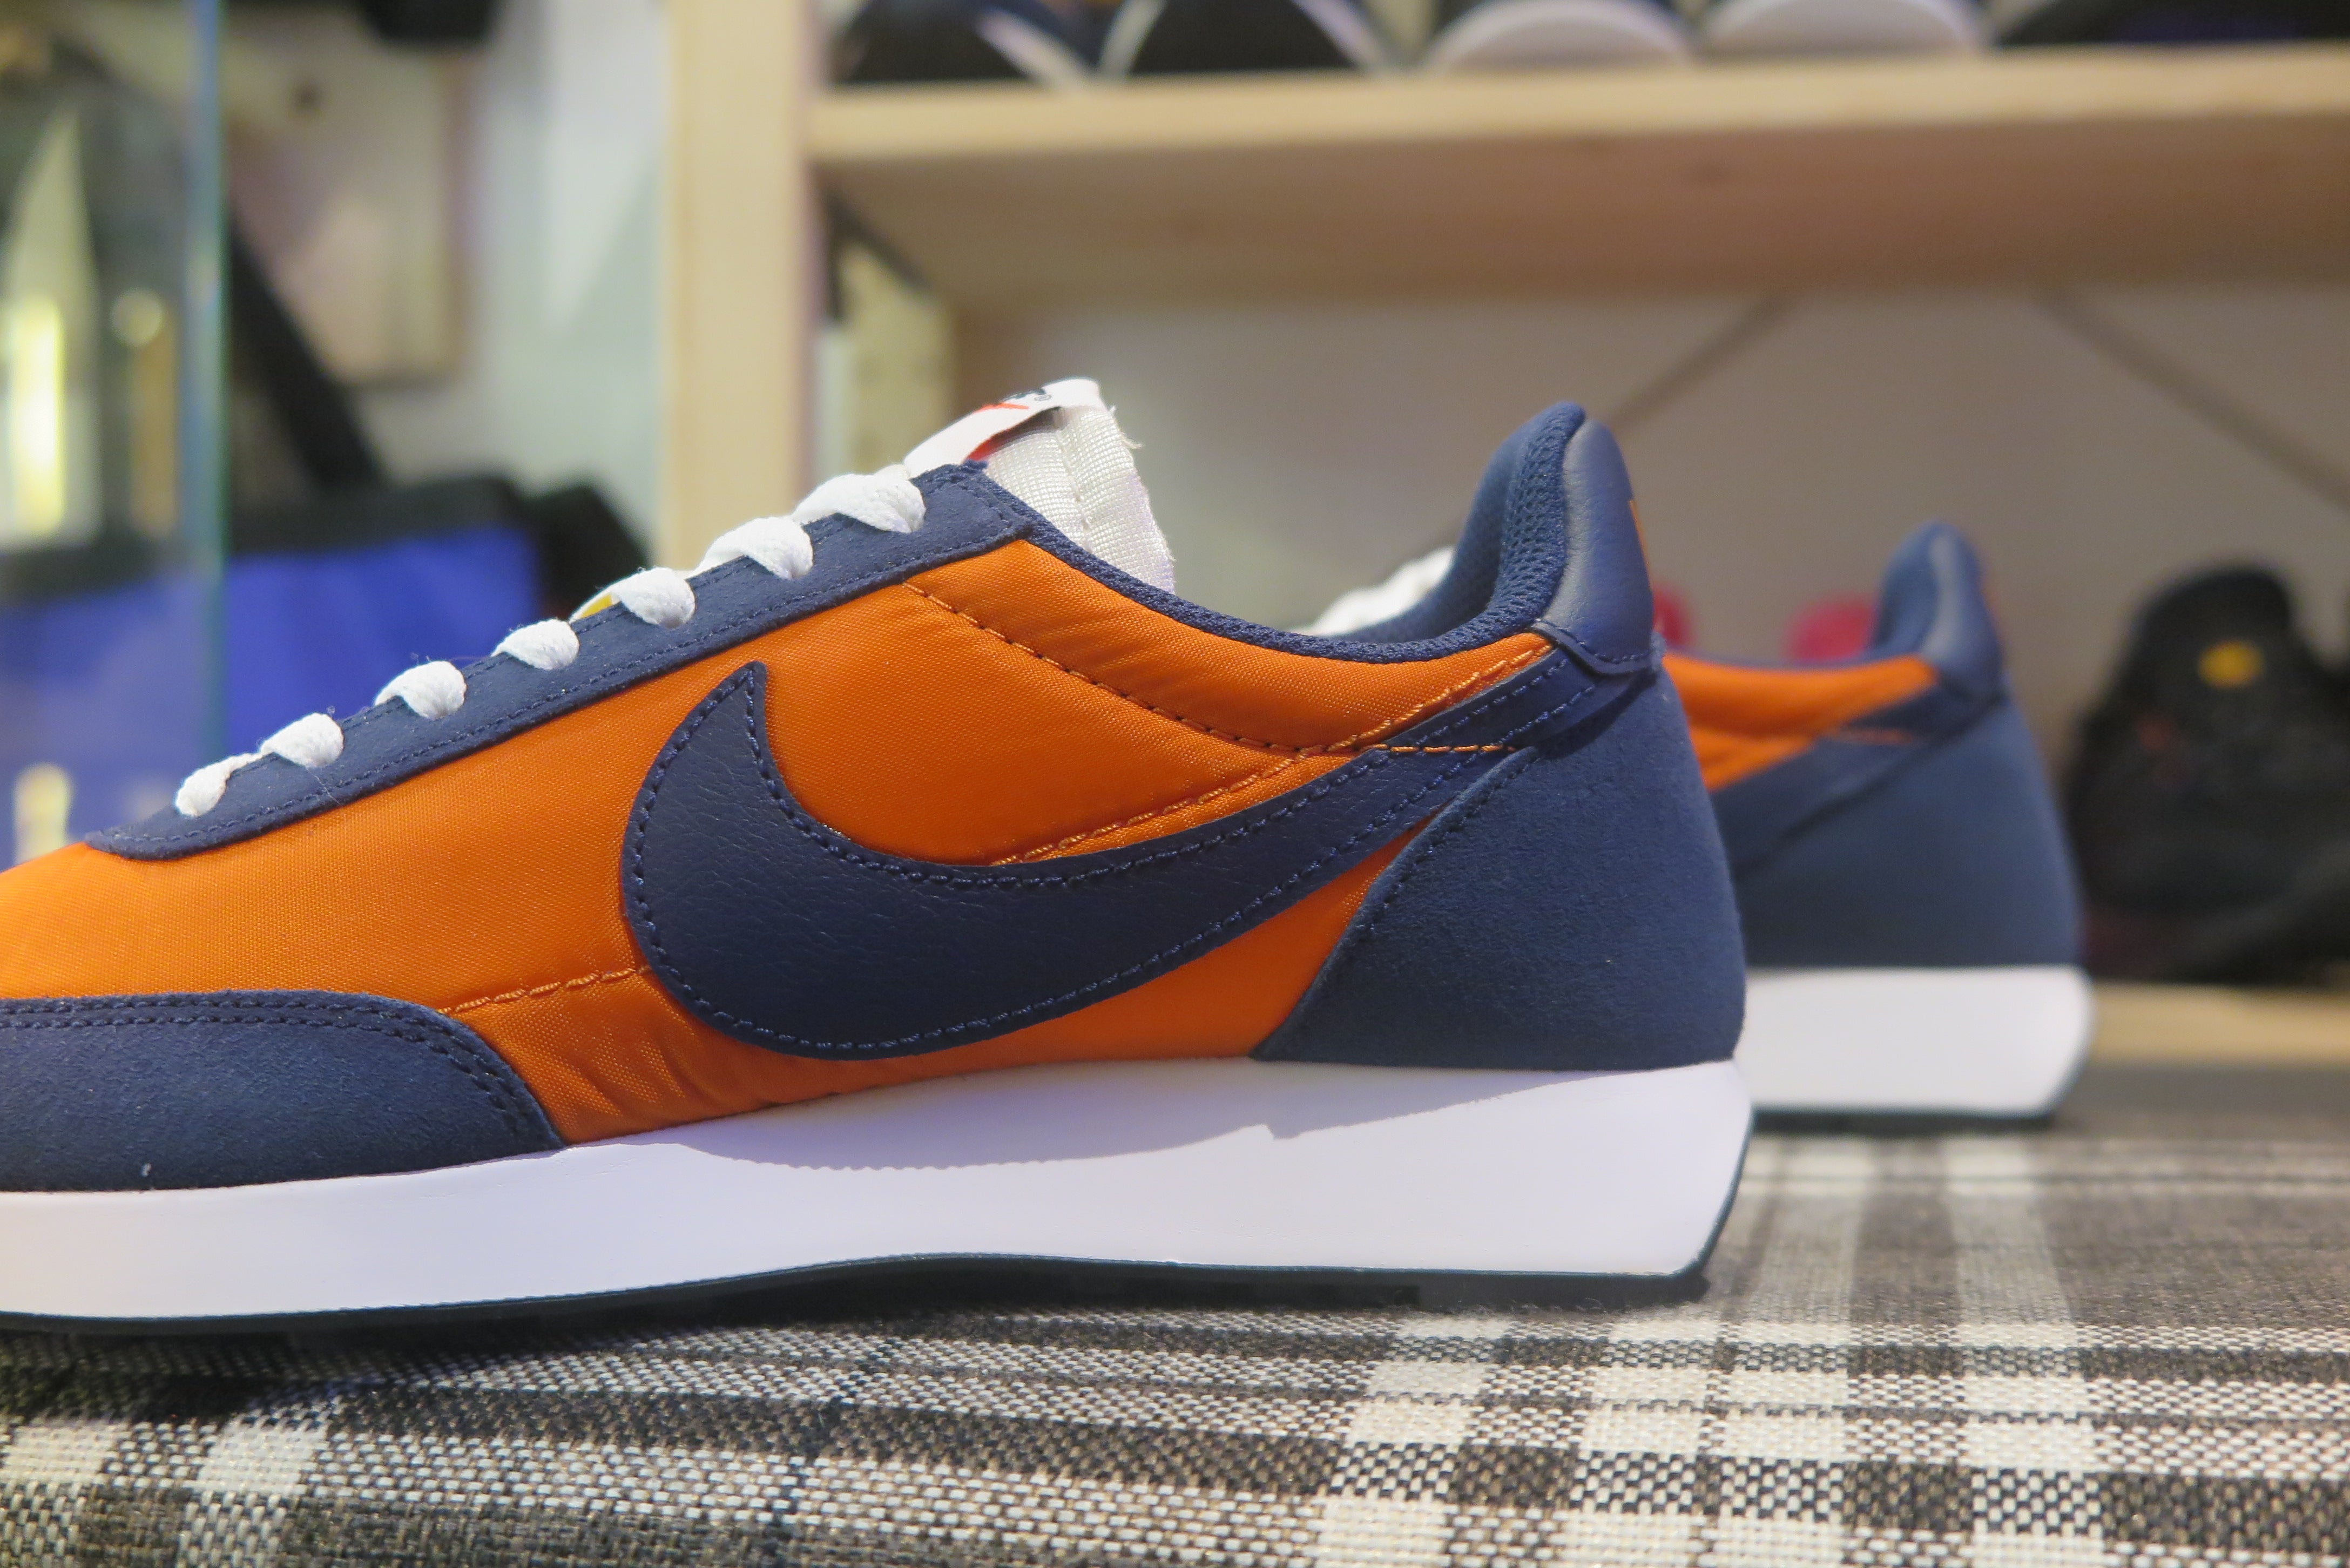 Nike Air Tailwind 79 - Starfish/Midnight Navy/White/Black #487754-800-Sneakers-Navy Selected Shop